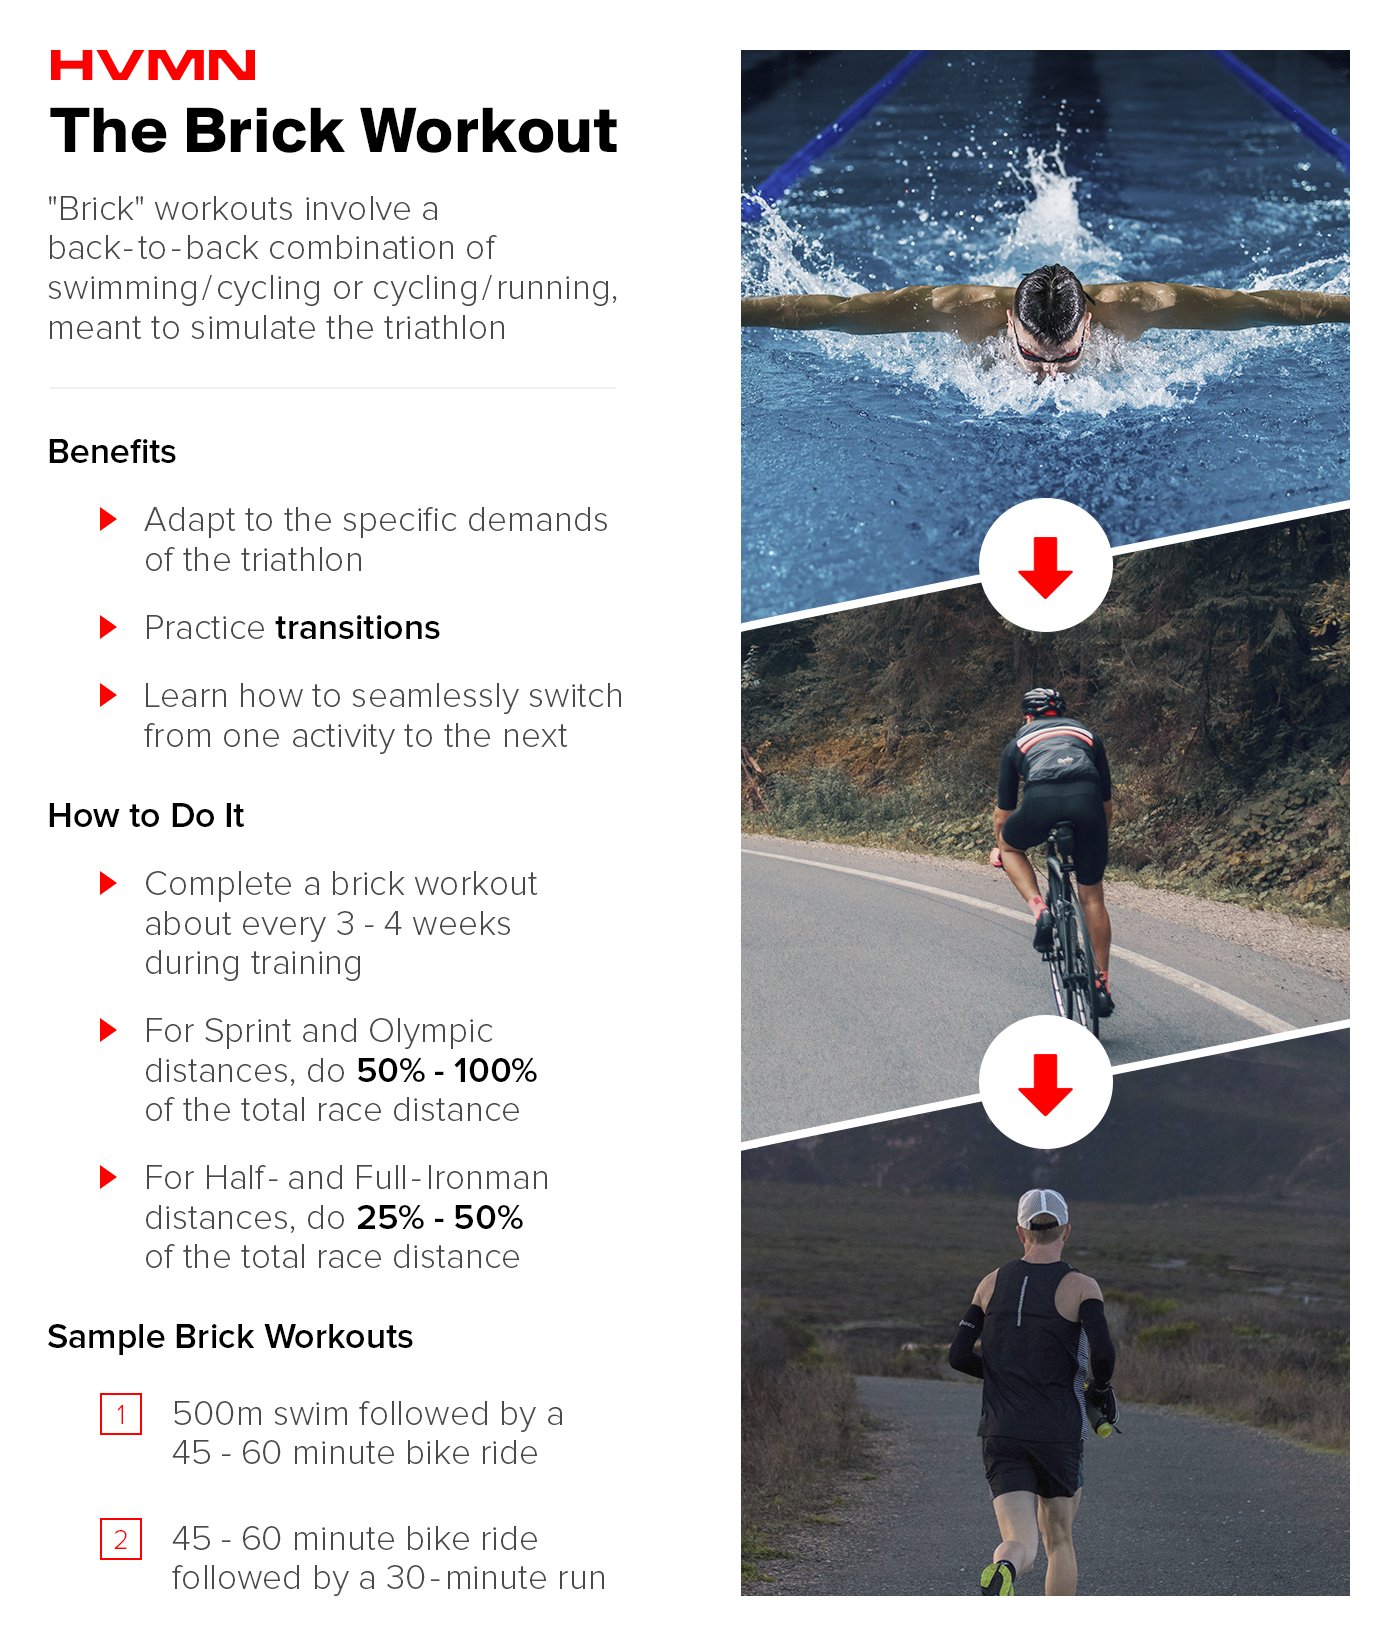 A swimmer doing butterfly with an arrow pointing to a biker on the road with an arrow pointing to a runner. This illustrates a brick workout